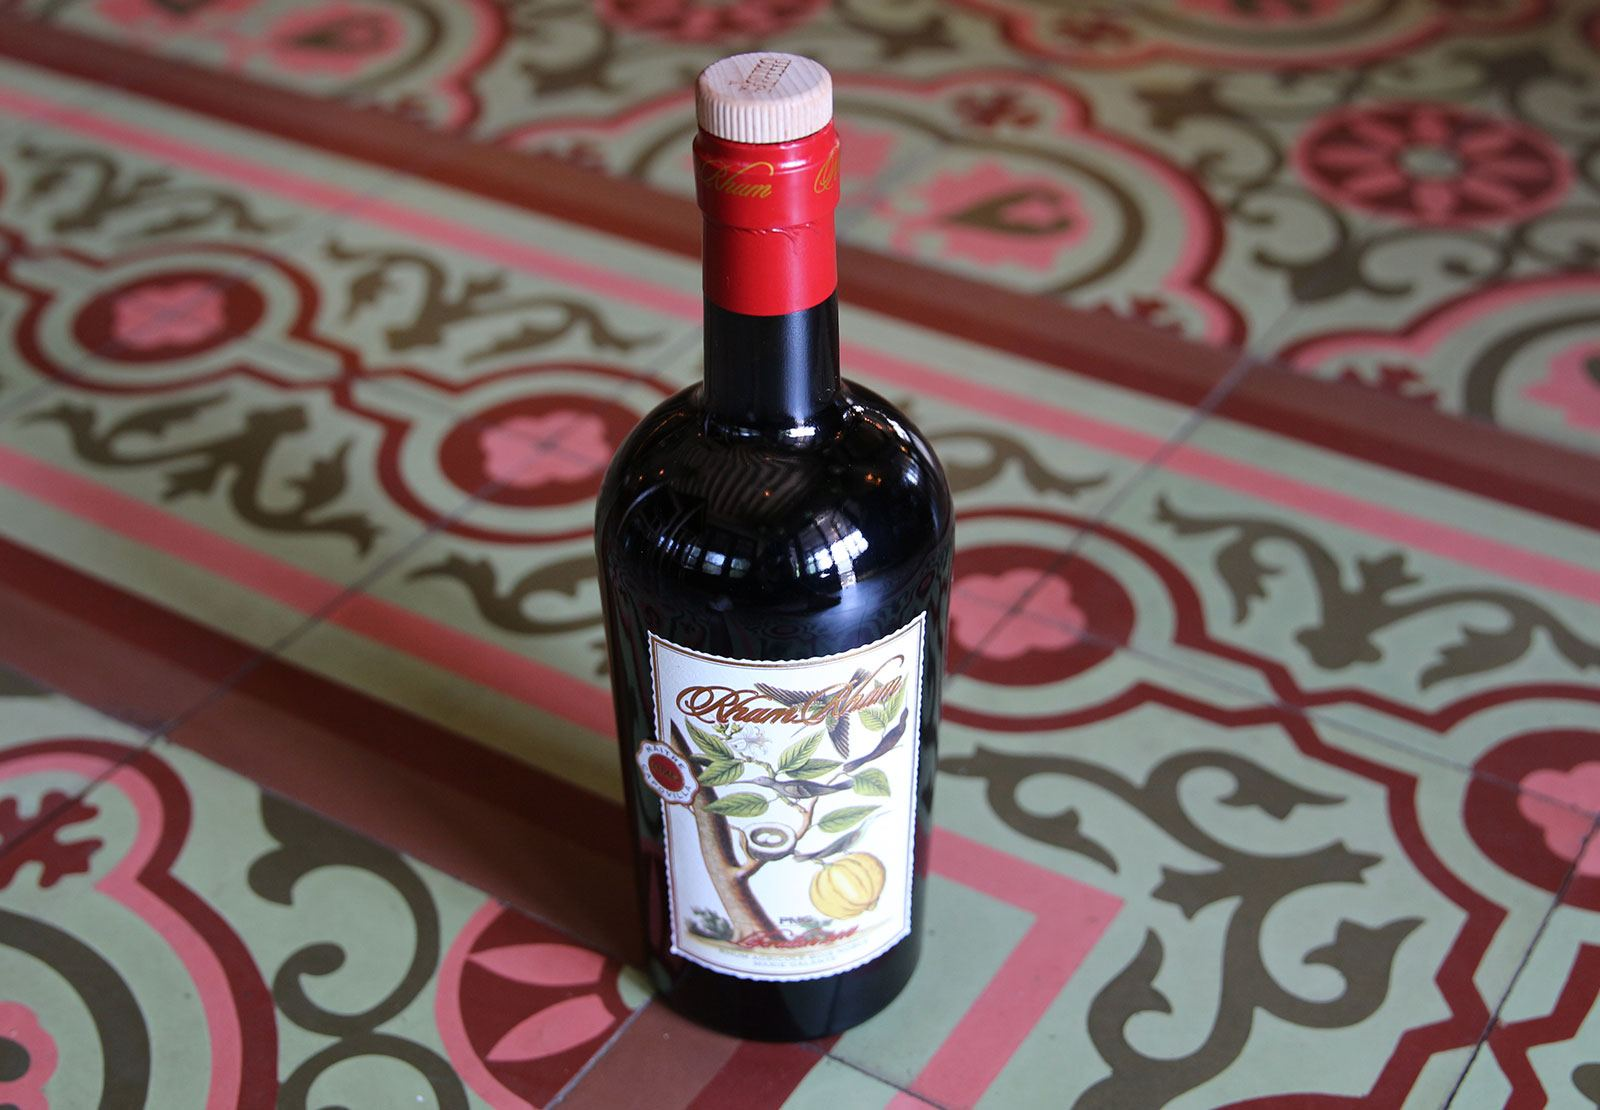 wine bottle on festive tile